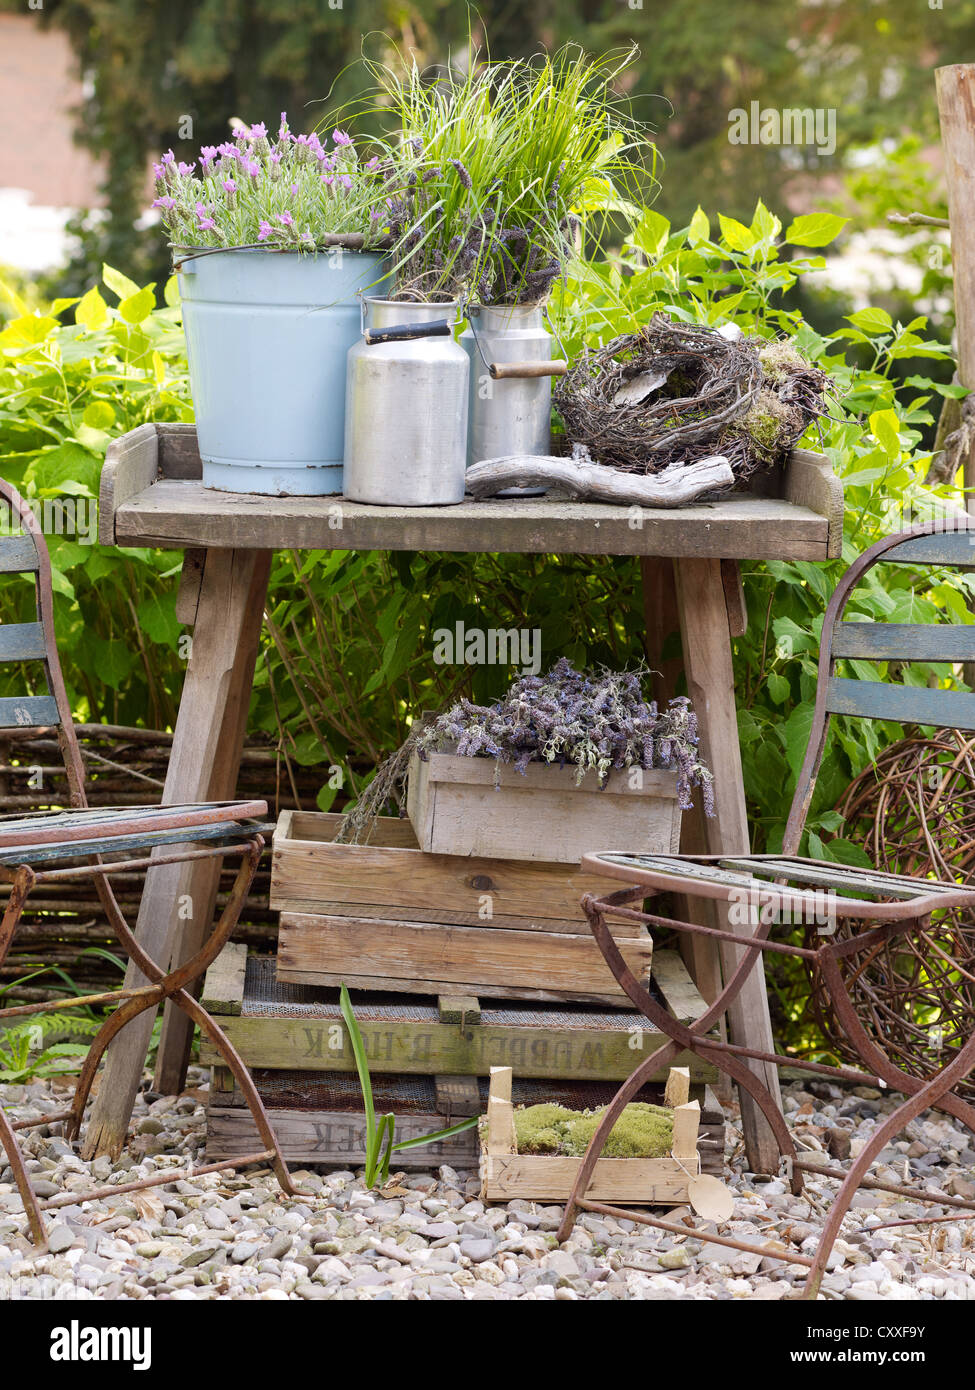 Still Life, Decorative Garden Accessories, Metal Jugs On An Old Wooden  Table In A Romantic Garden